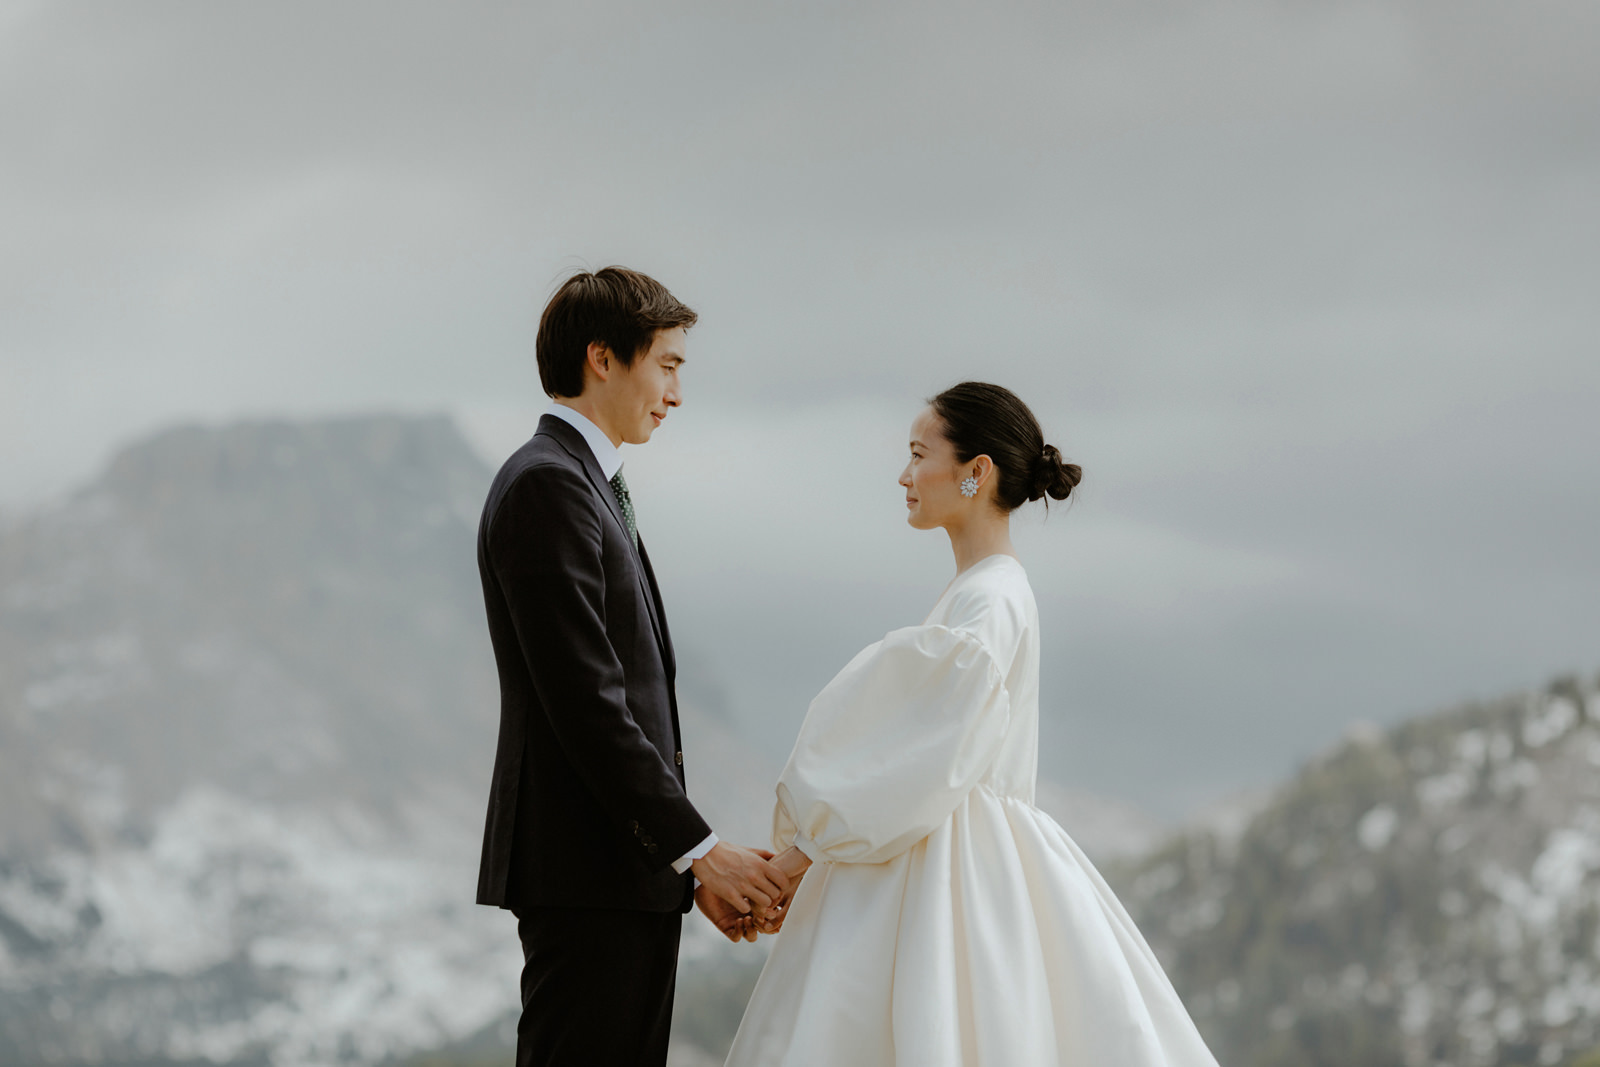 bride and groom portrait in the Dolomites